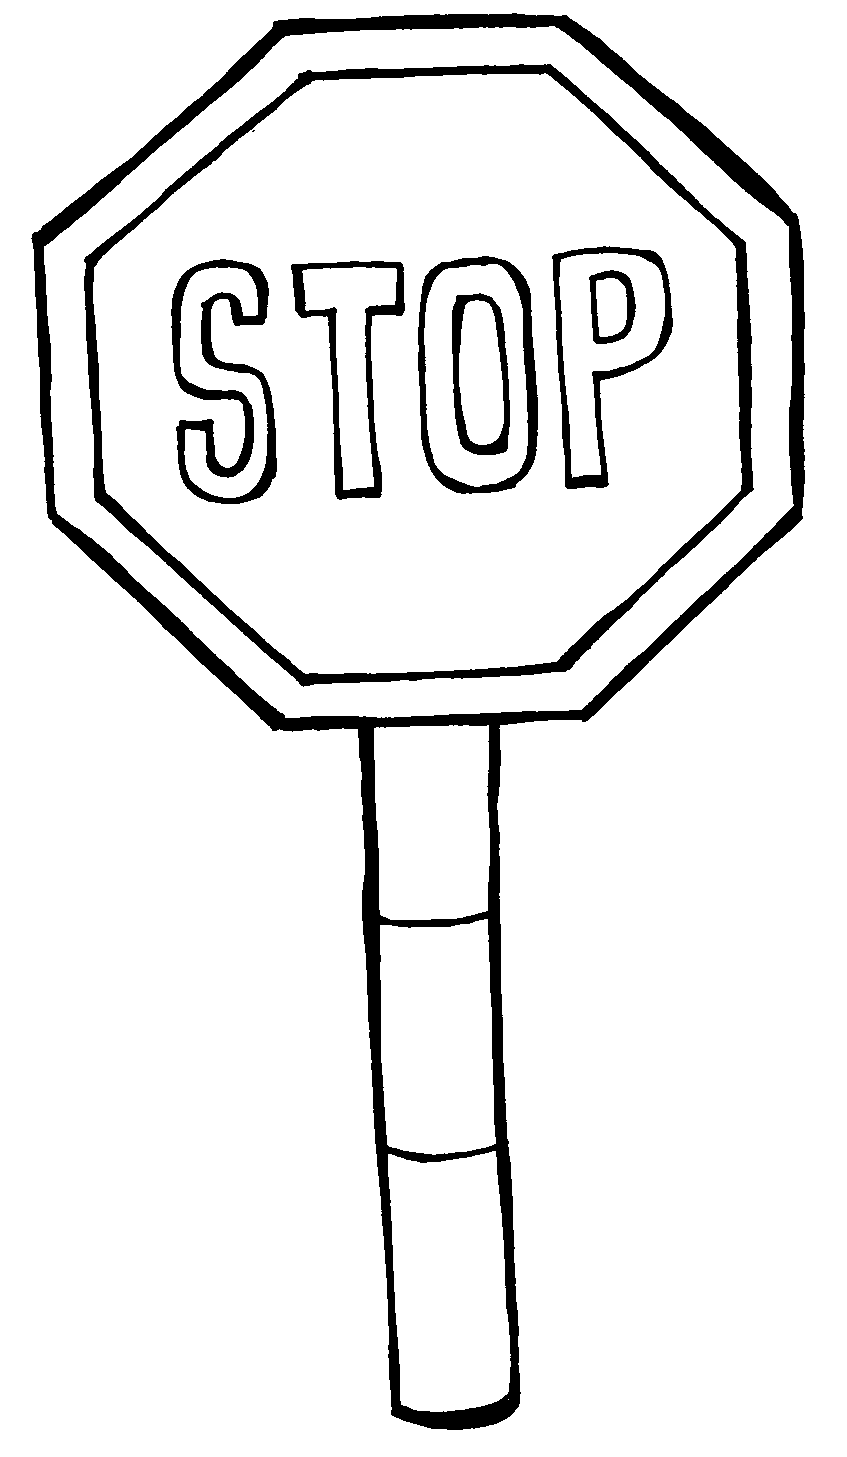 Colour the road signs safety by openstax for Safety signs coloring pages